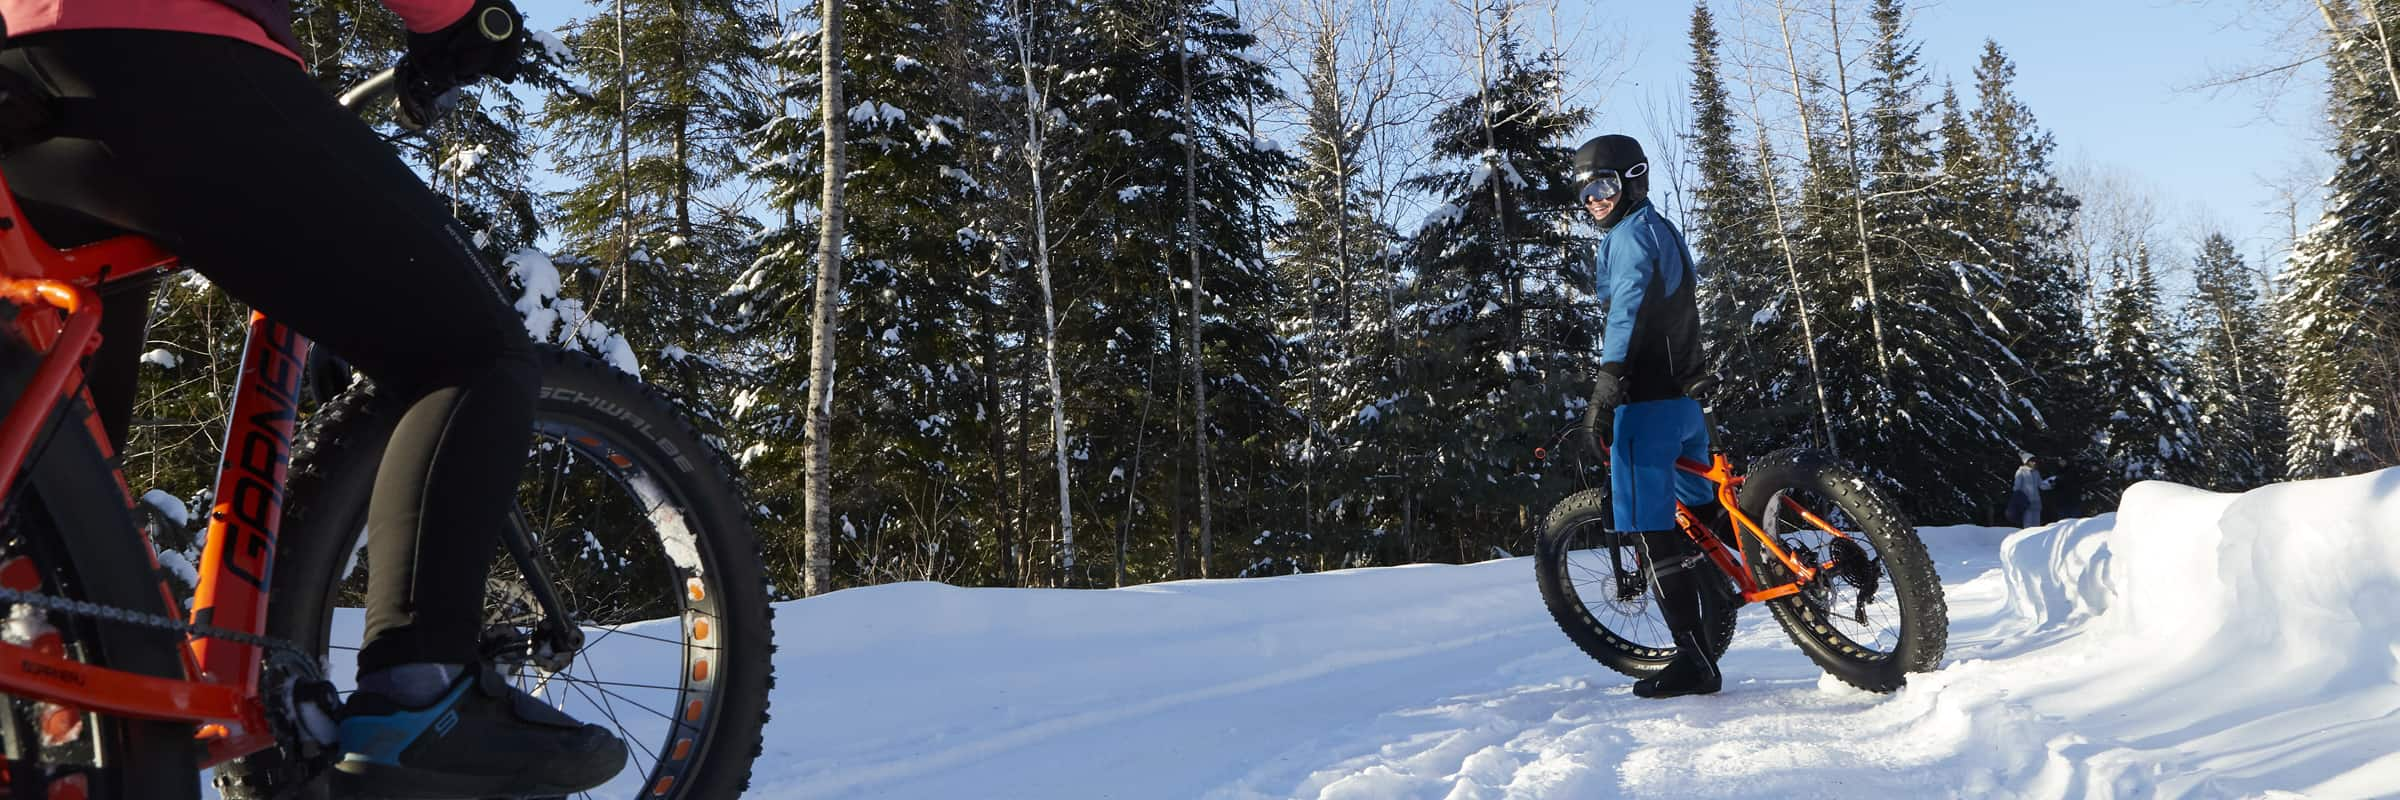 Fat Biking Do's and Don'ts